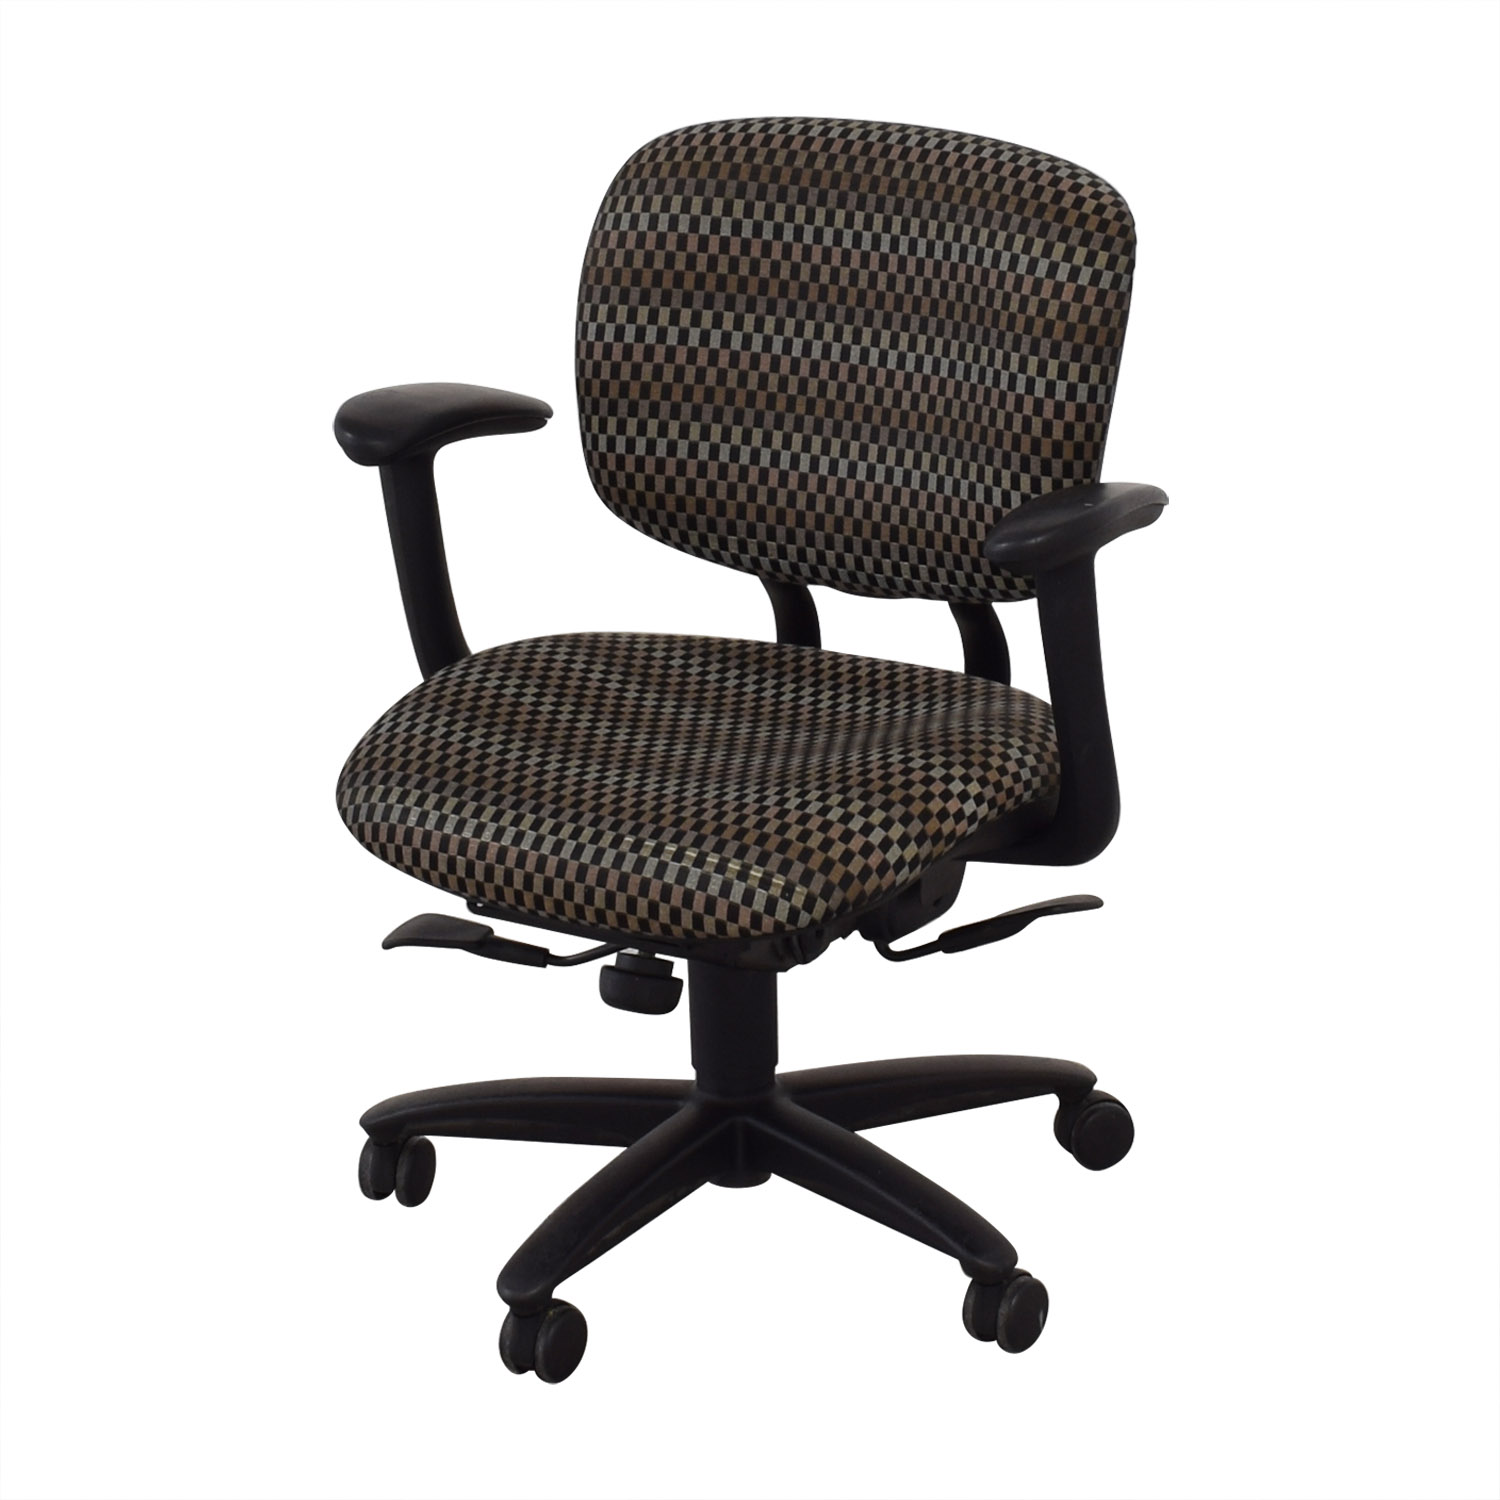 Haworth Improv Office Desk Chairs sale